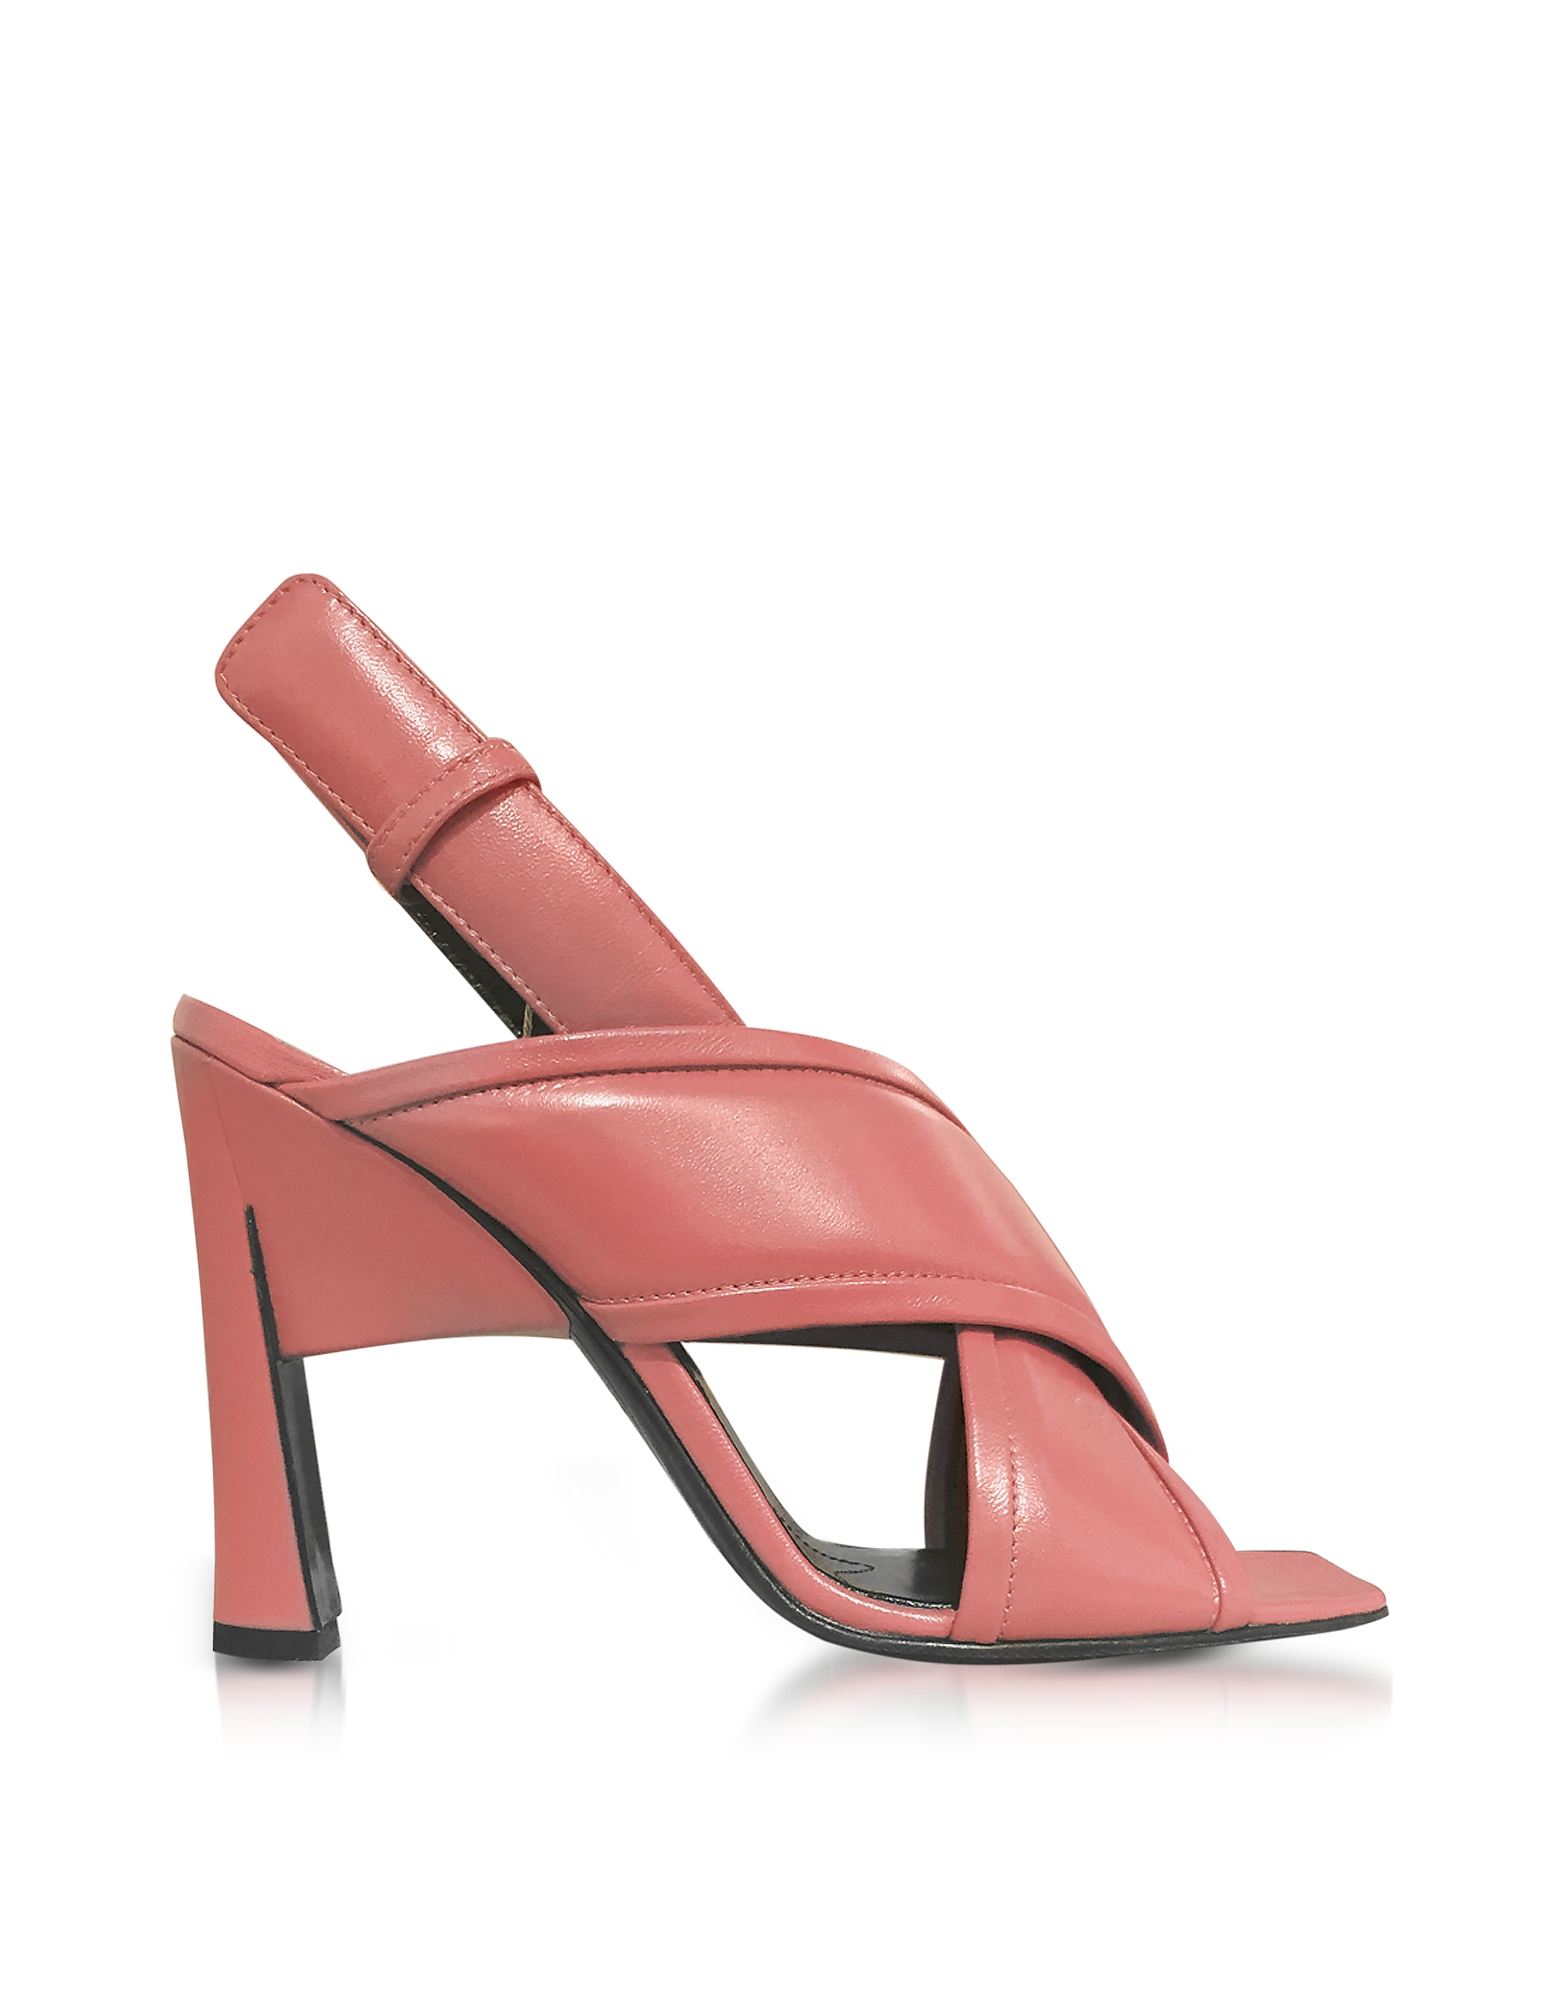 Marni Shoes, Camellia Leather High Heel Sandals